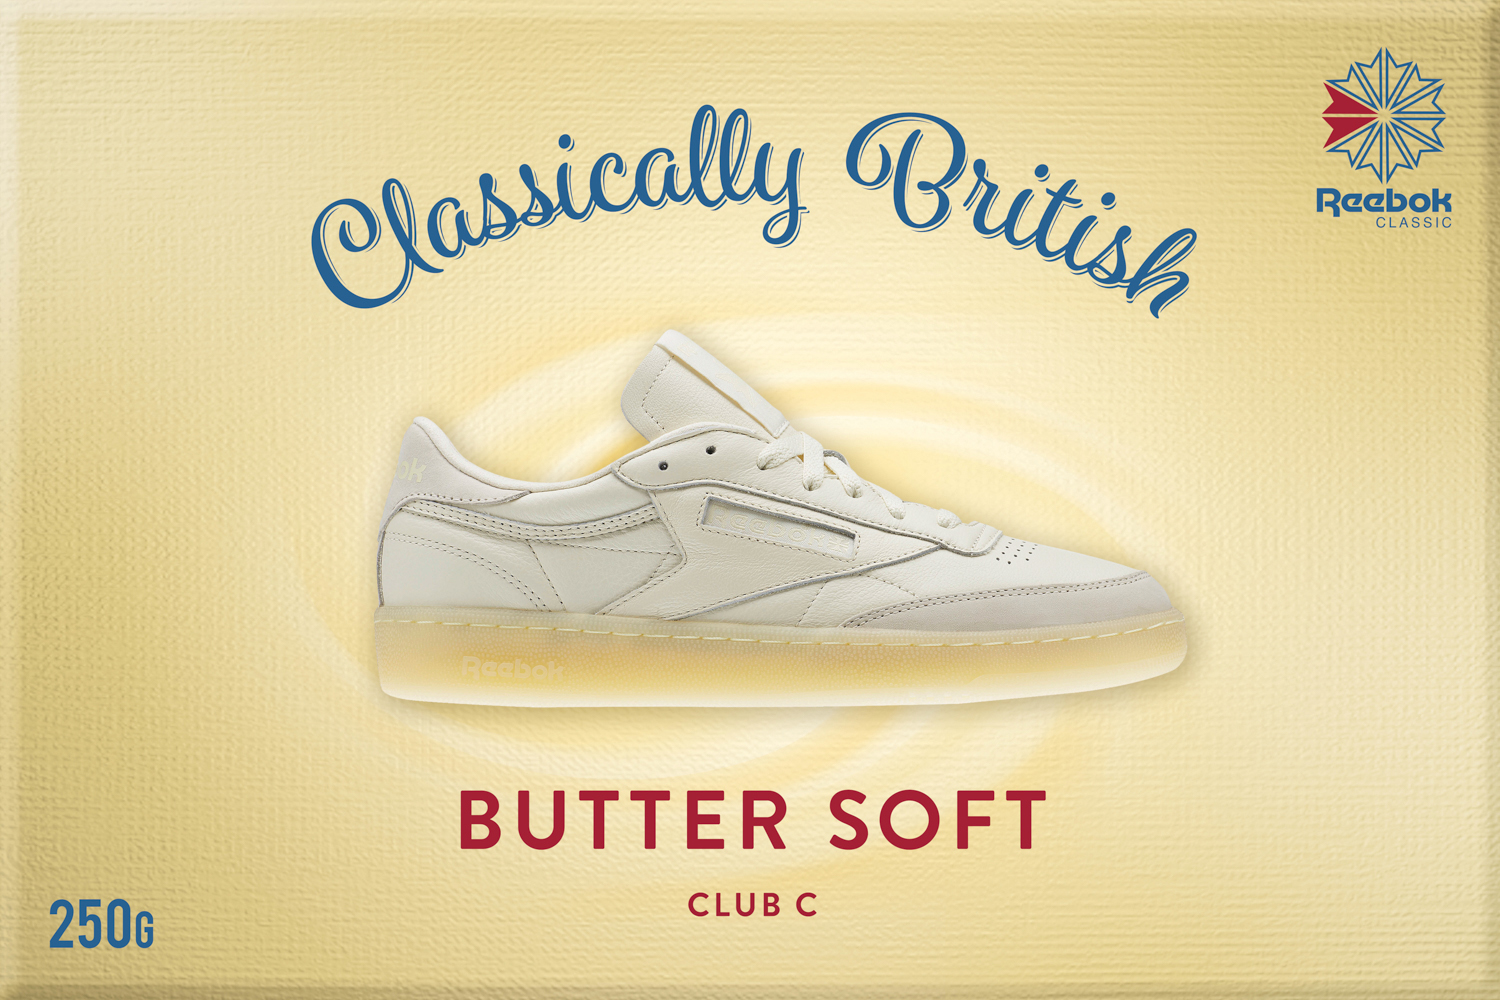 Reebok Present their 'Butter Soft' Trio